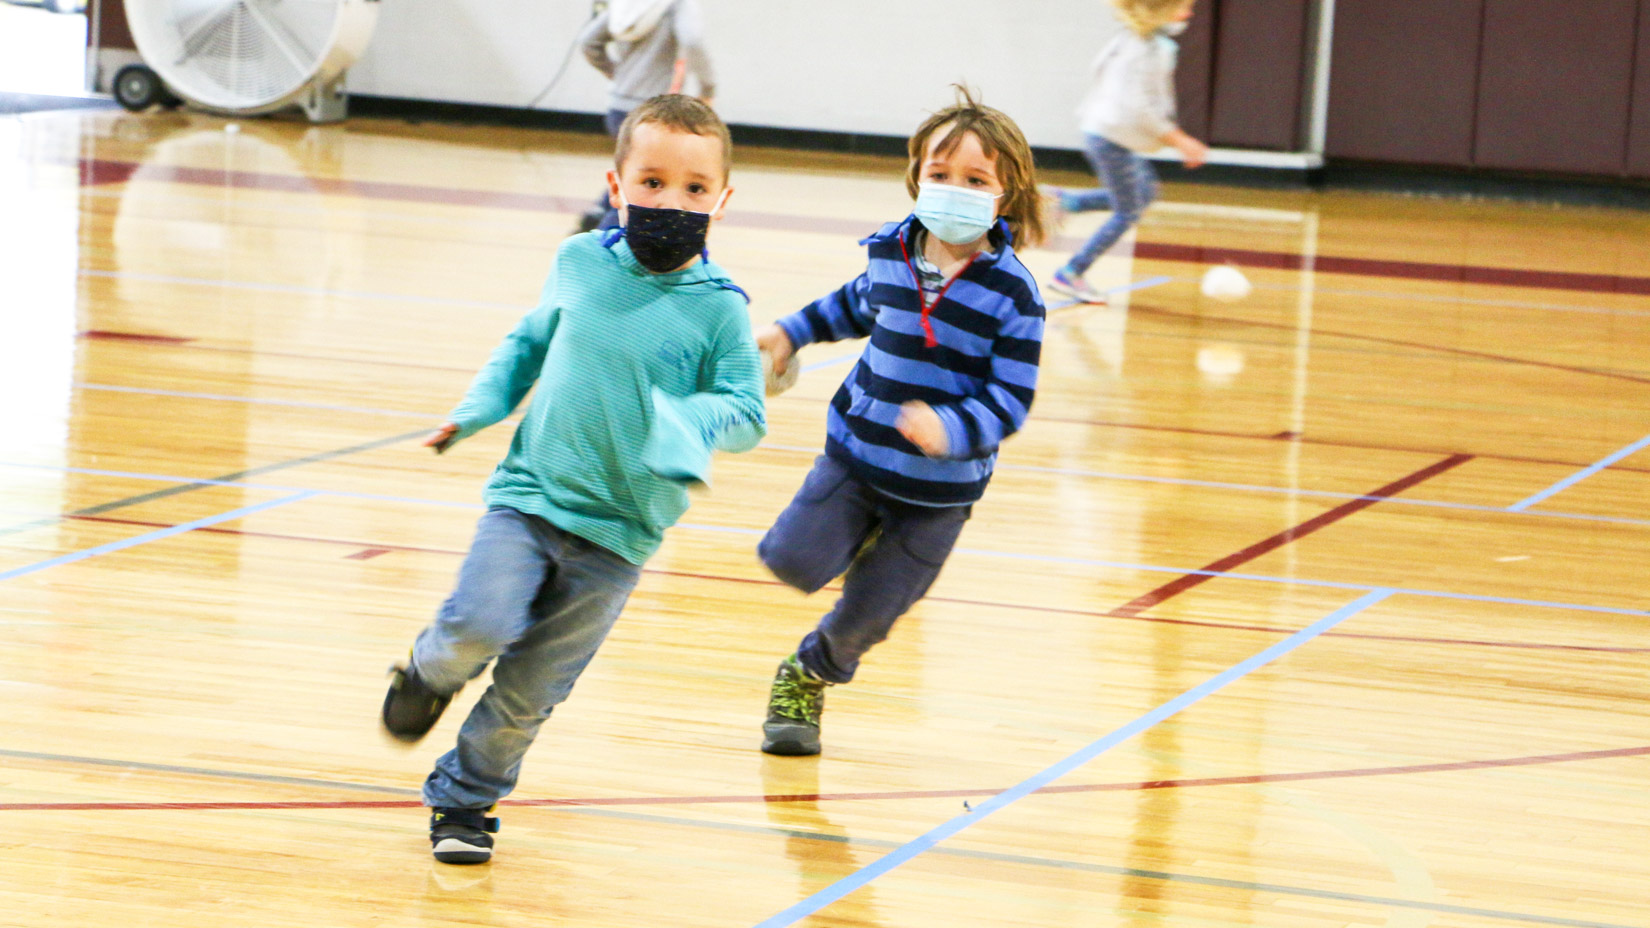 Students running in the gym.